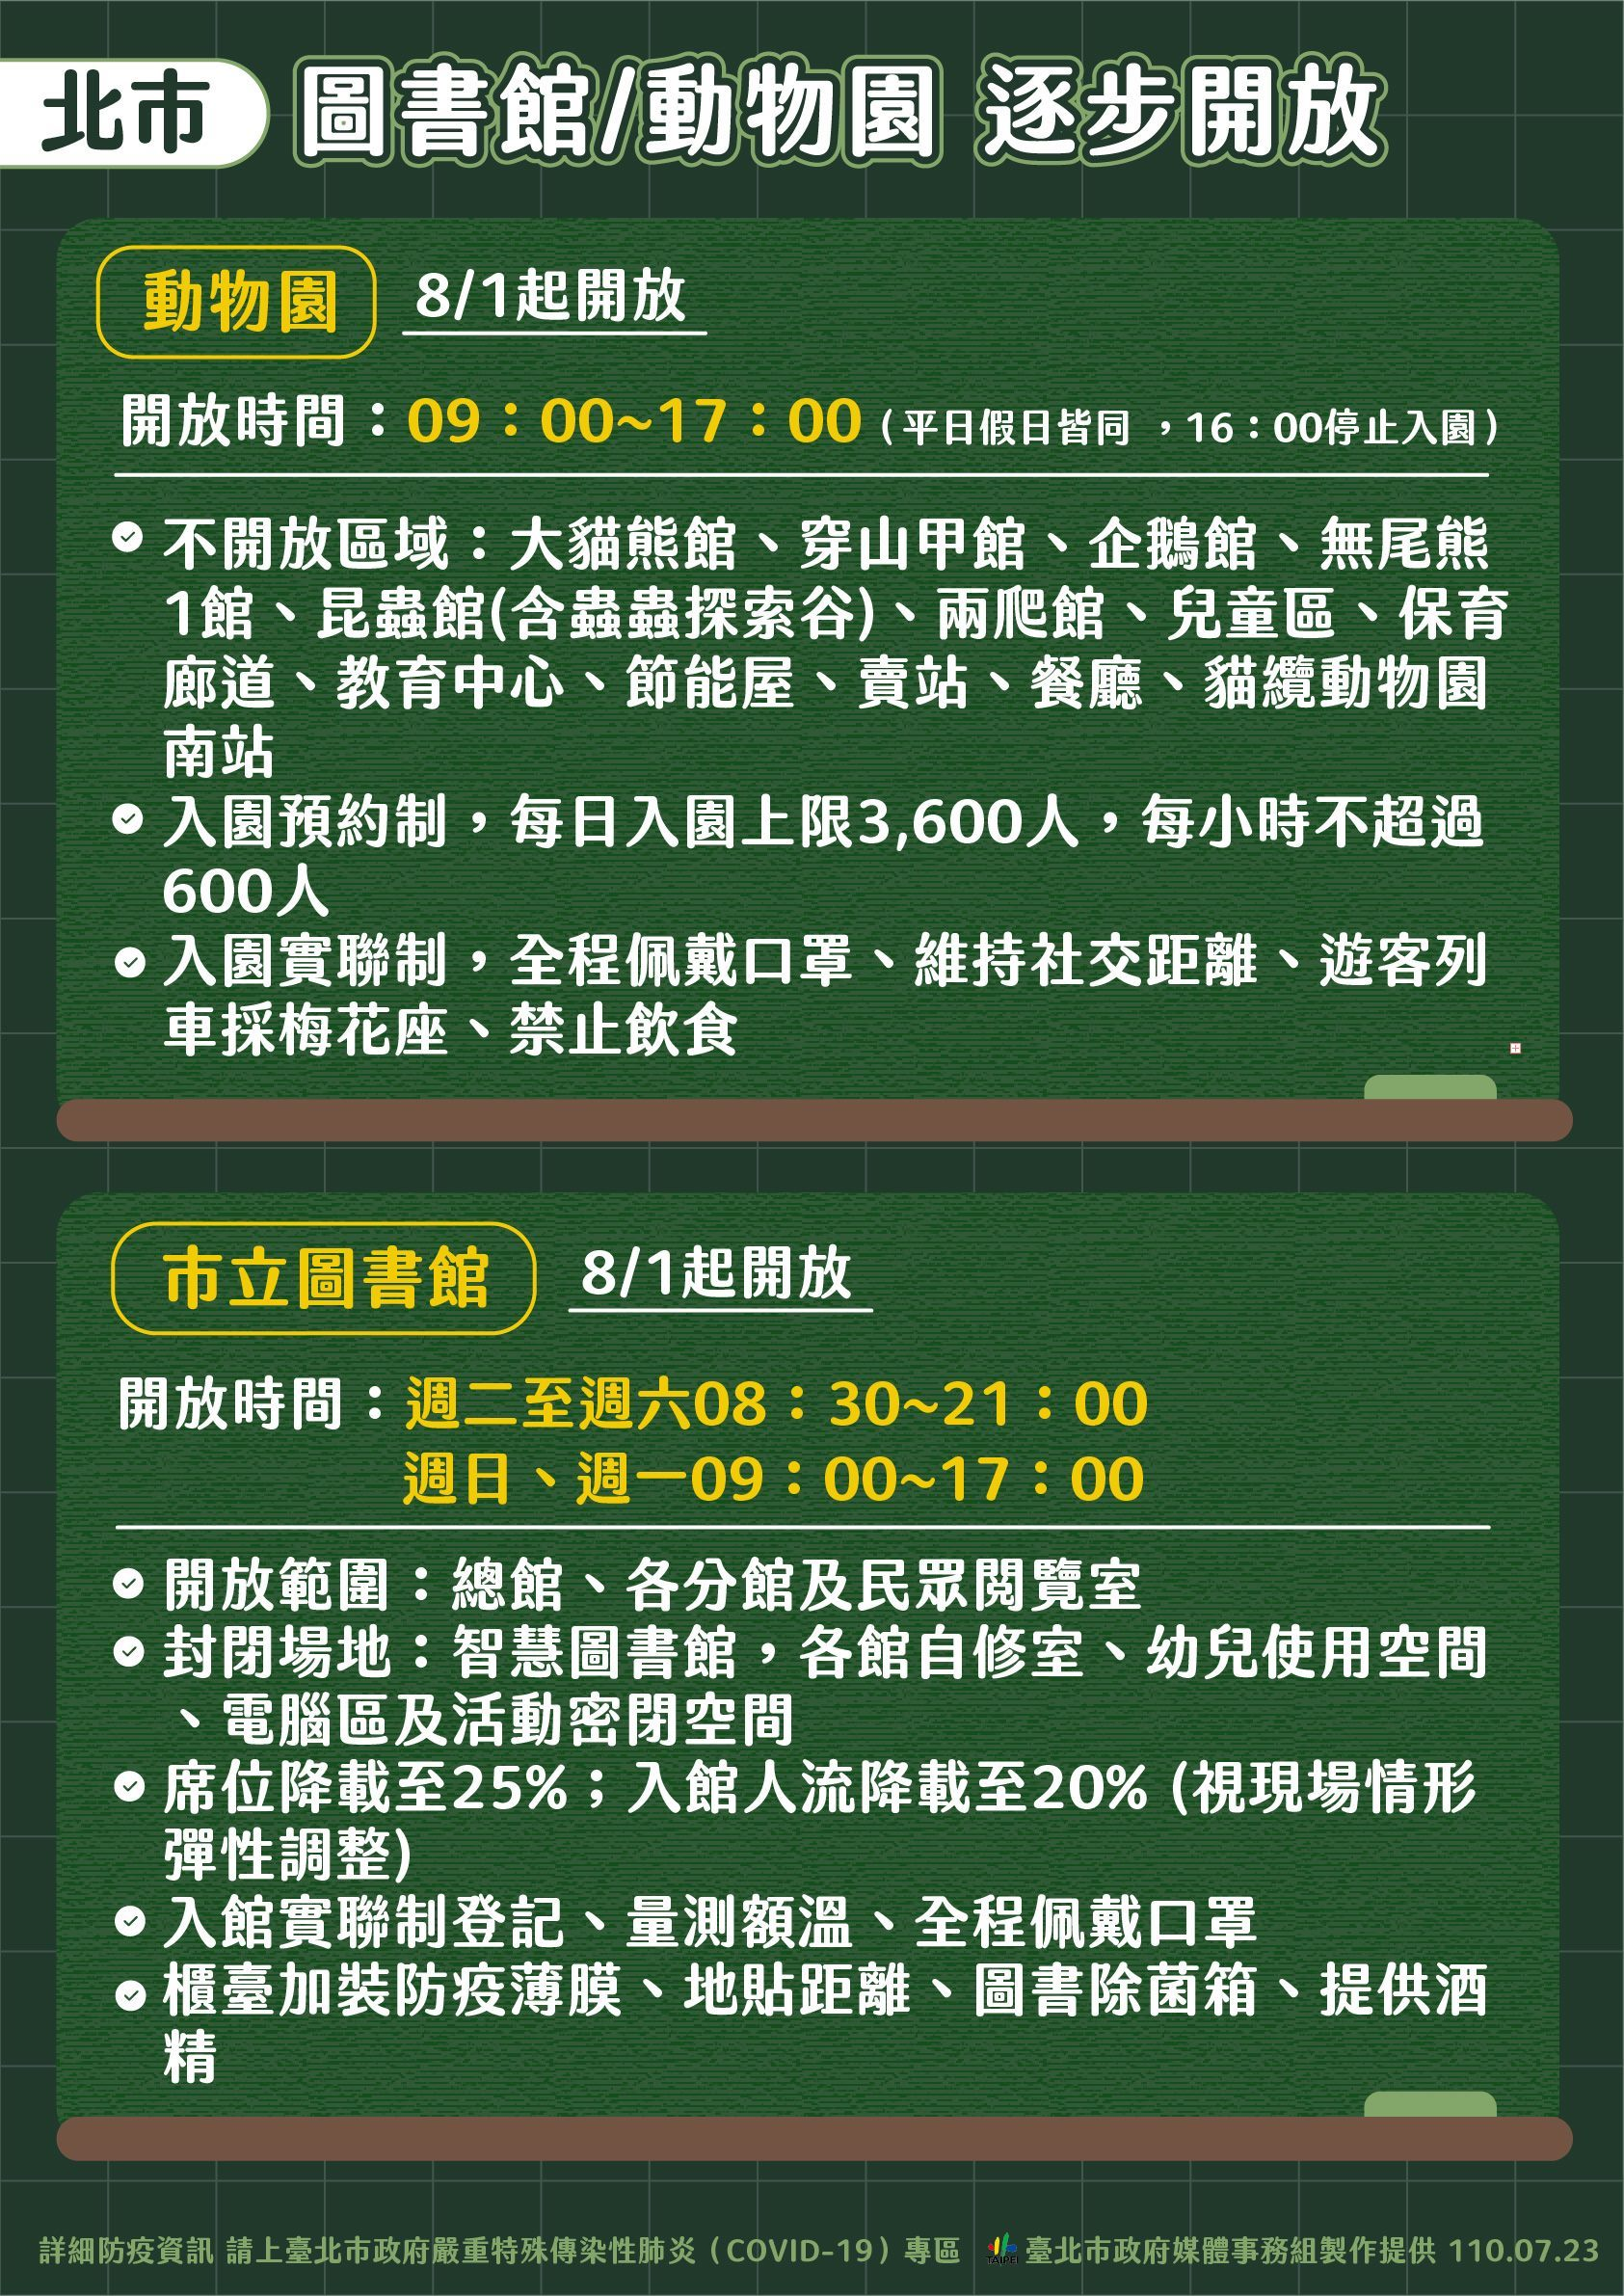 Poster with details on TPL reopening